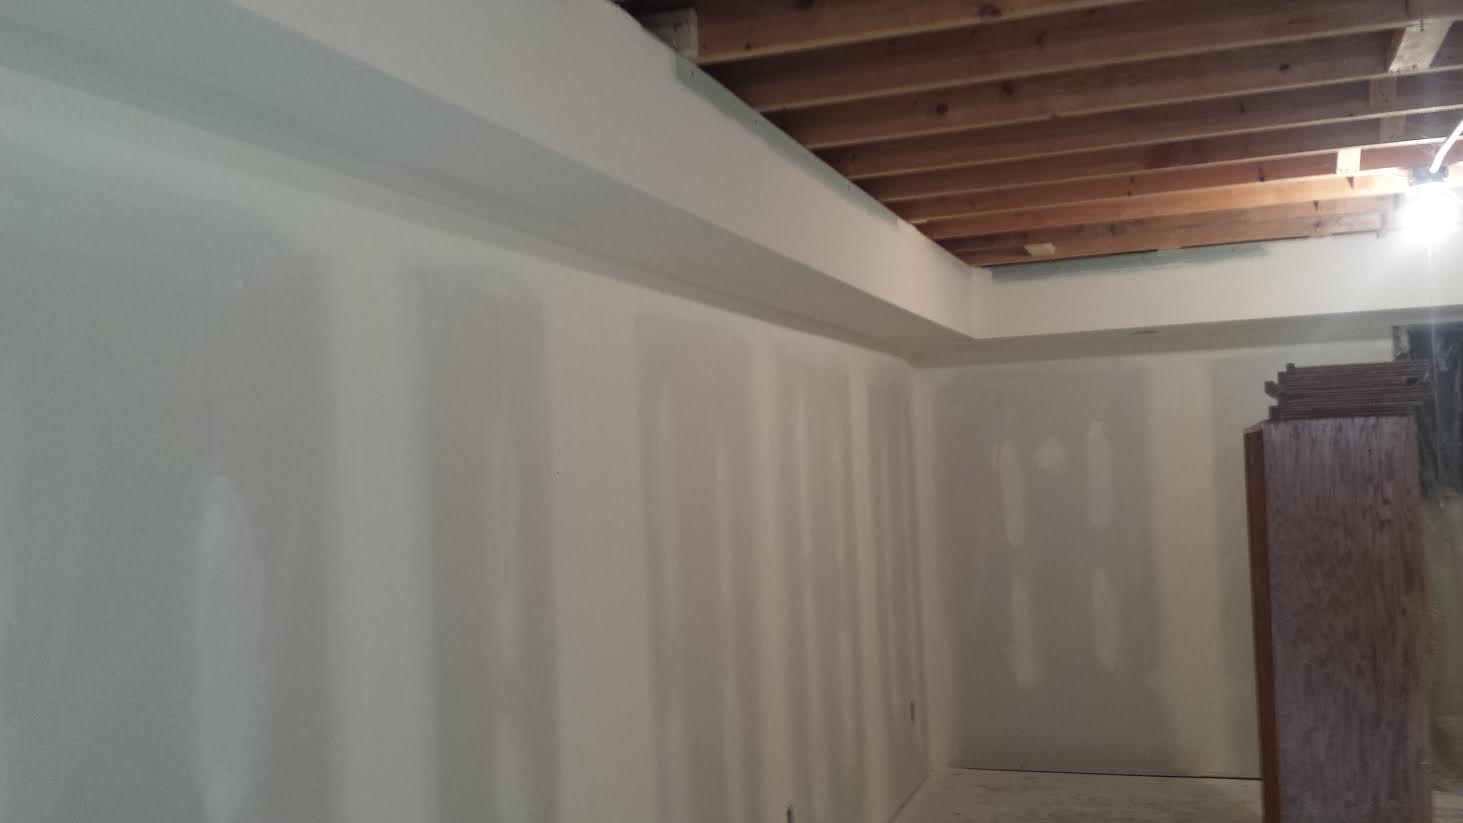 Drywall Amp Taping Basement Drywall Repair Painting